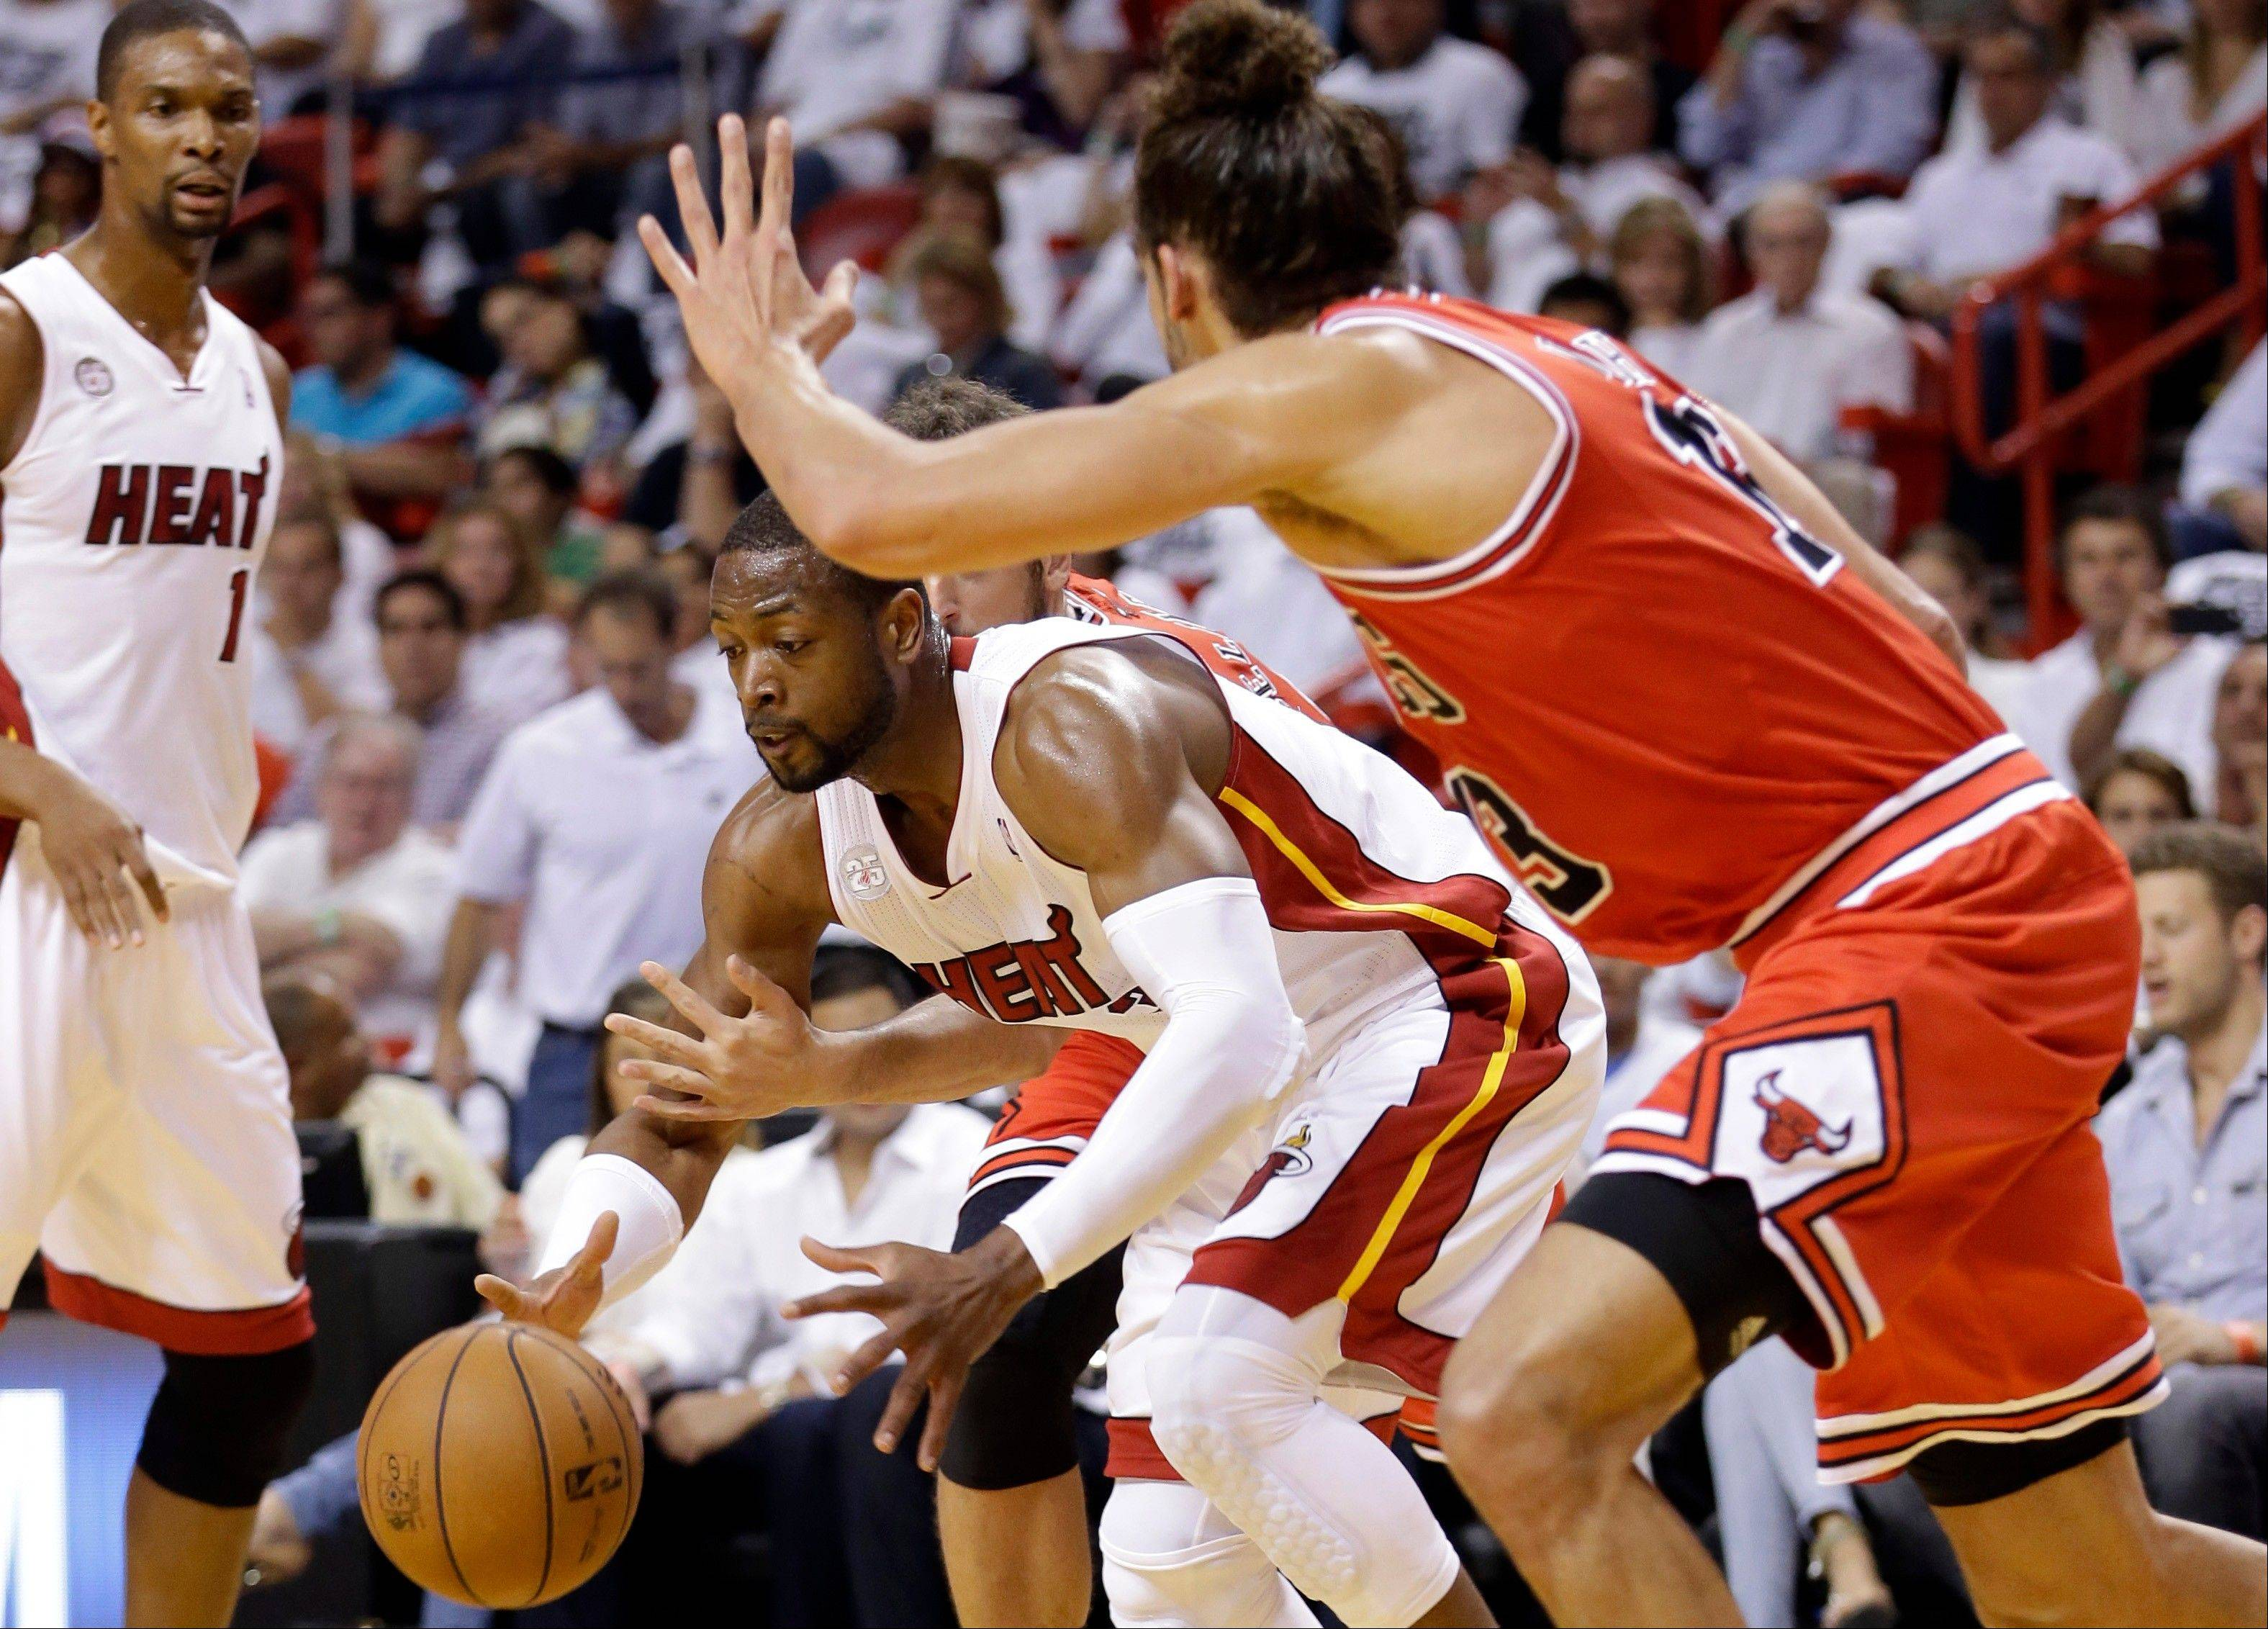 Miami Heat's Dwyane Wade, center, is defended by Chicago Bulls' Joakim Noah, right, during the first half of Game 5 of an NBA basketball playoffs Eastern Conference semifinal, Wednesday, May 15, 2013, in Miami.